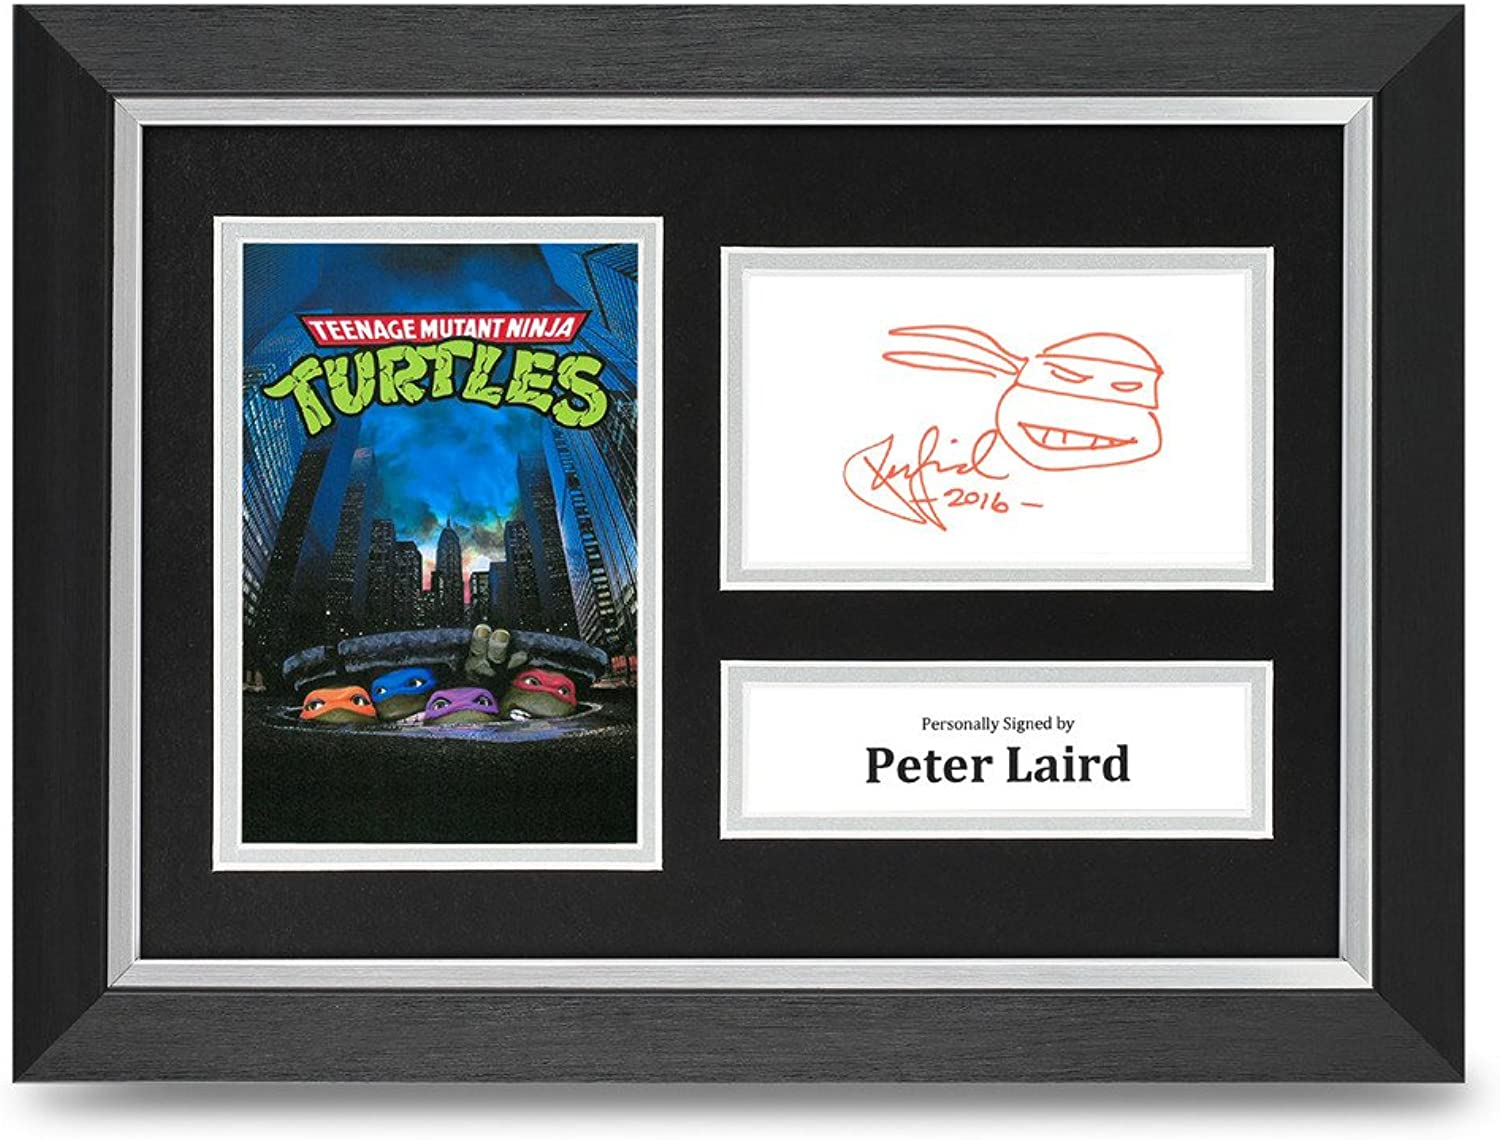 Peter Laird Signed A4 Photo Framed Display TMNT Turtles Memorabilia Autograph